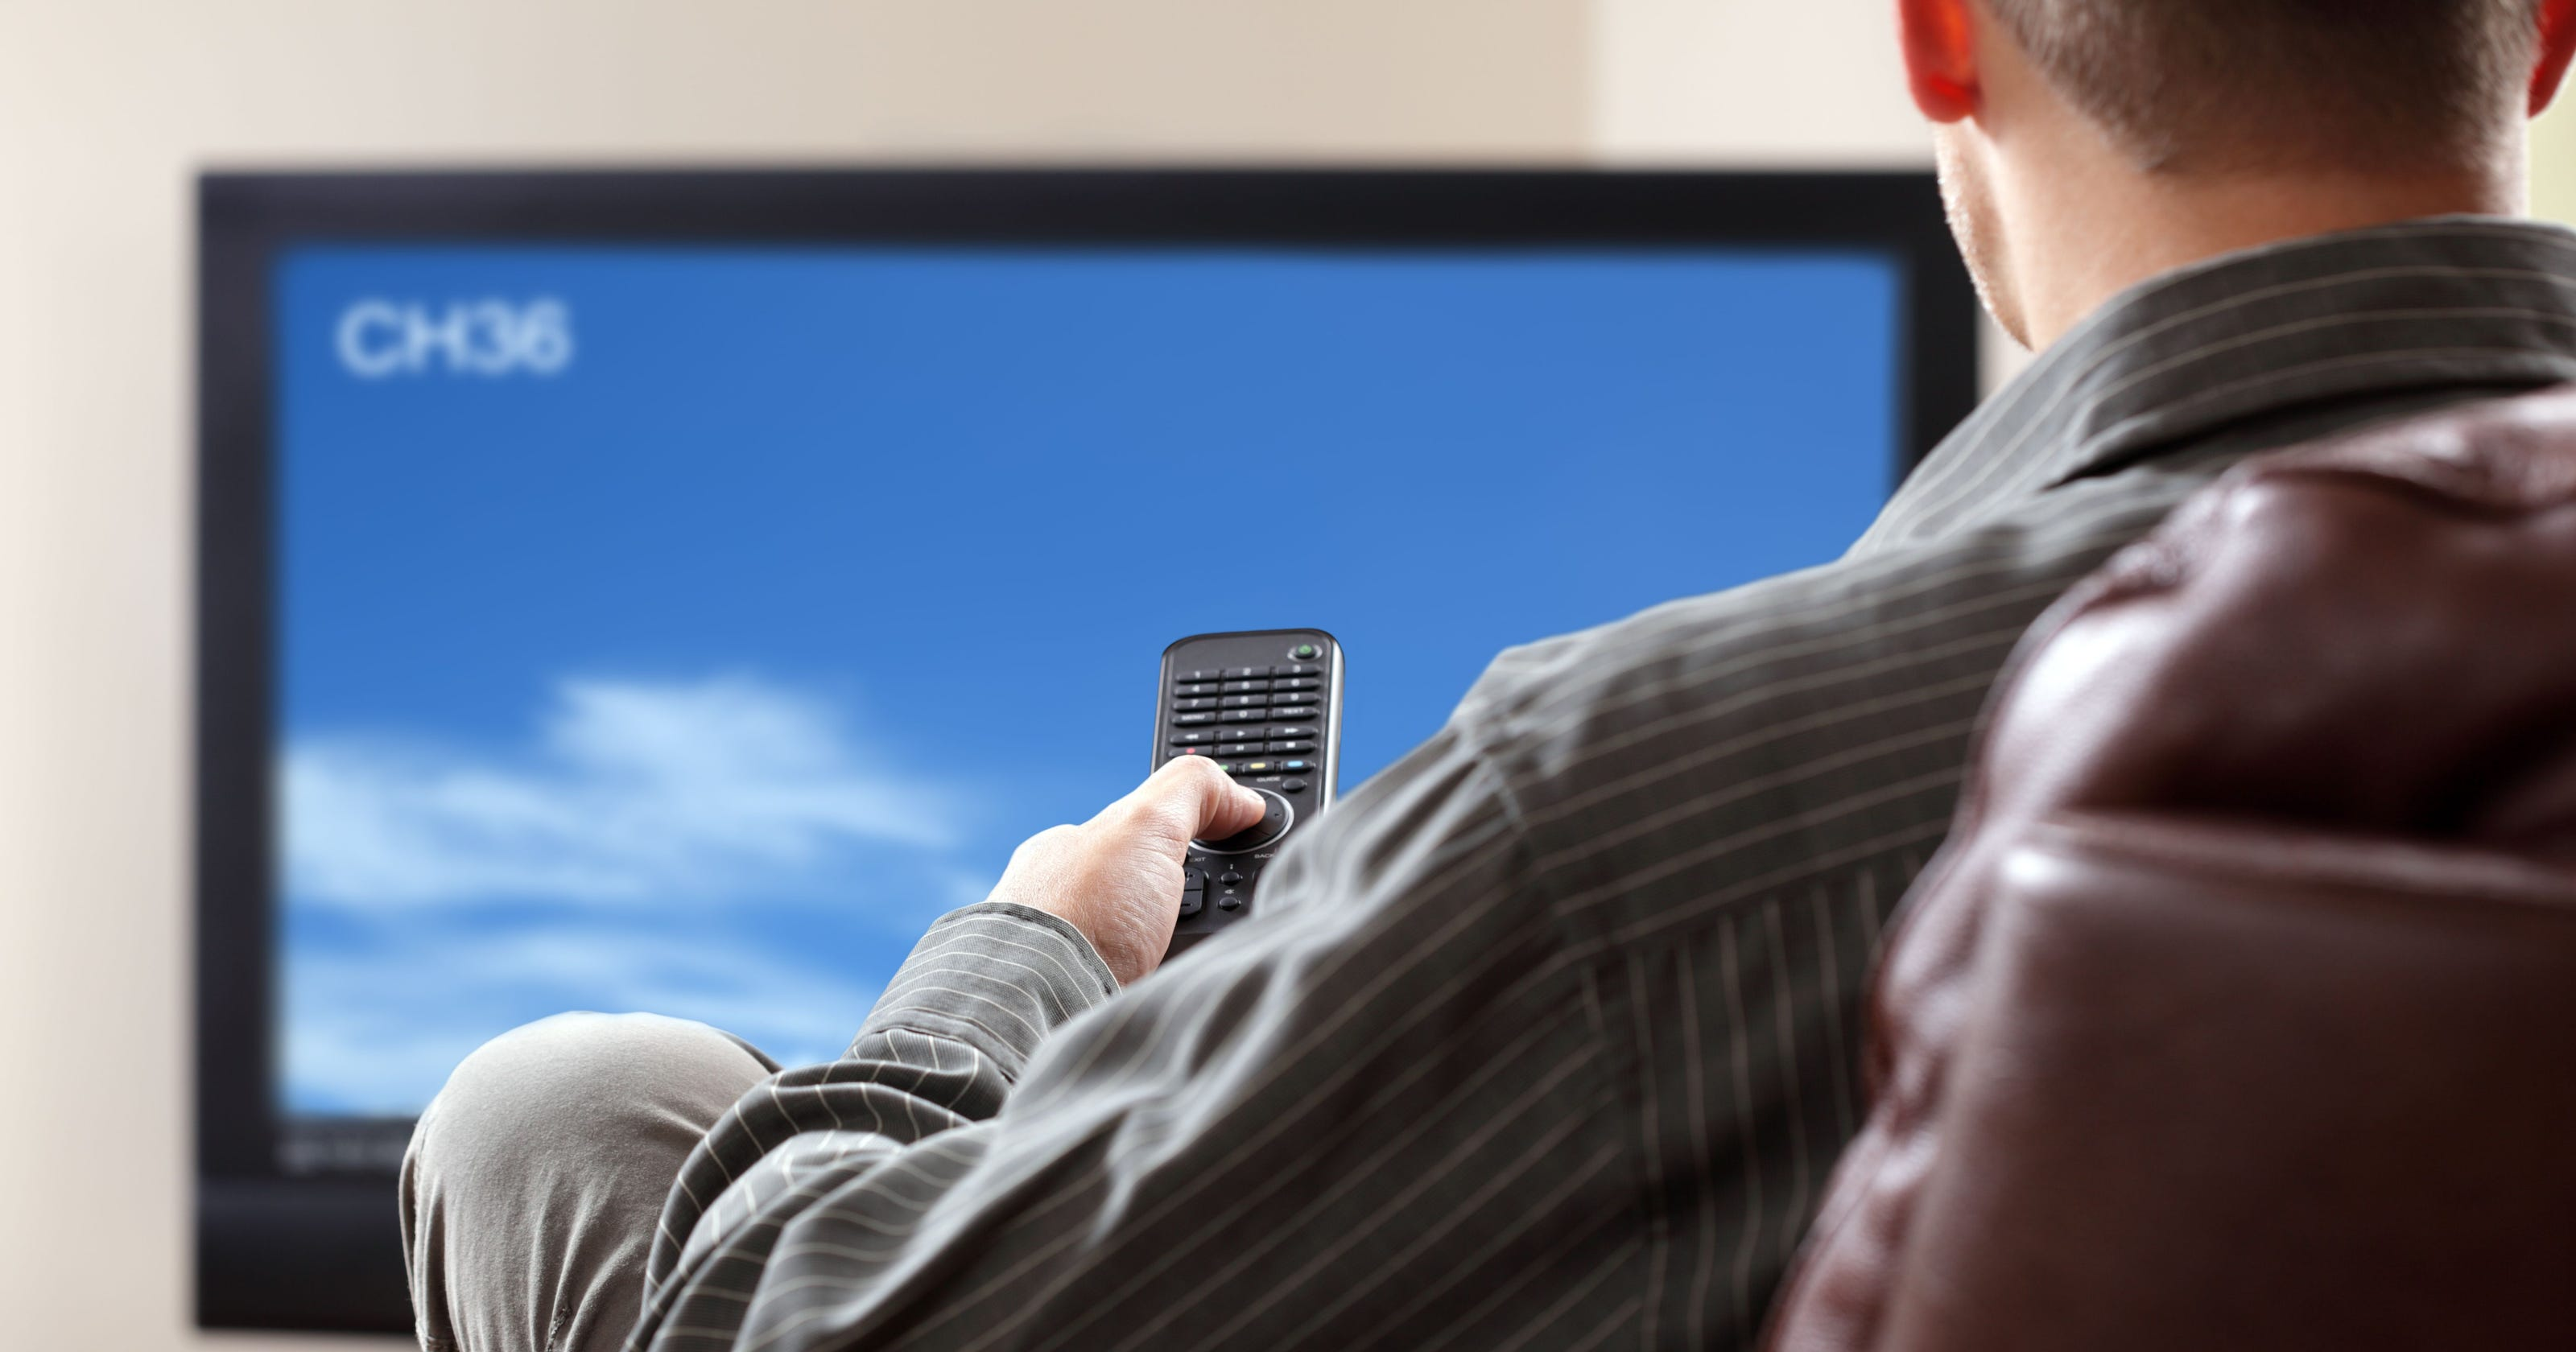 Cable bill: How to cut the cost without (necessarily